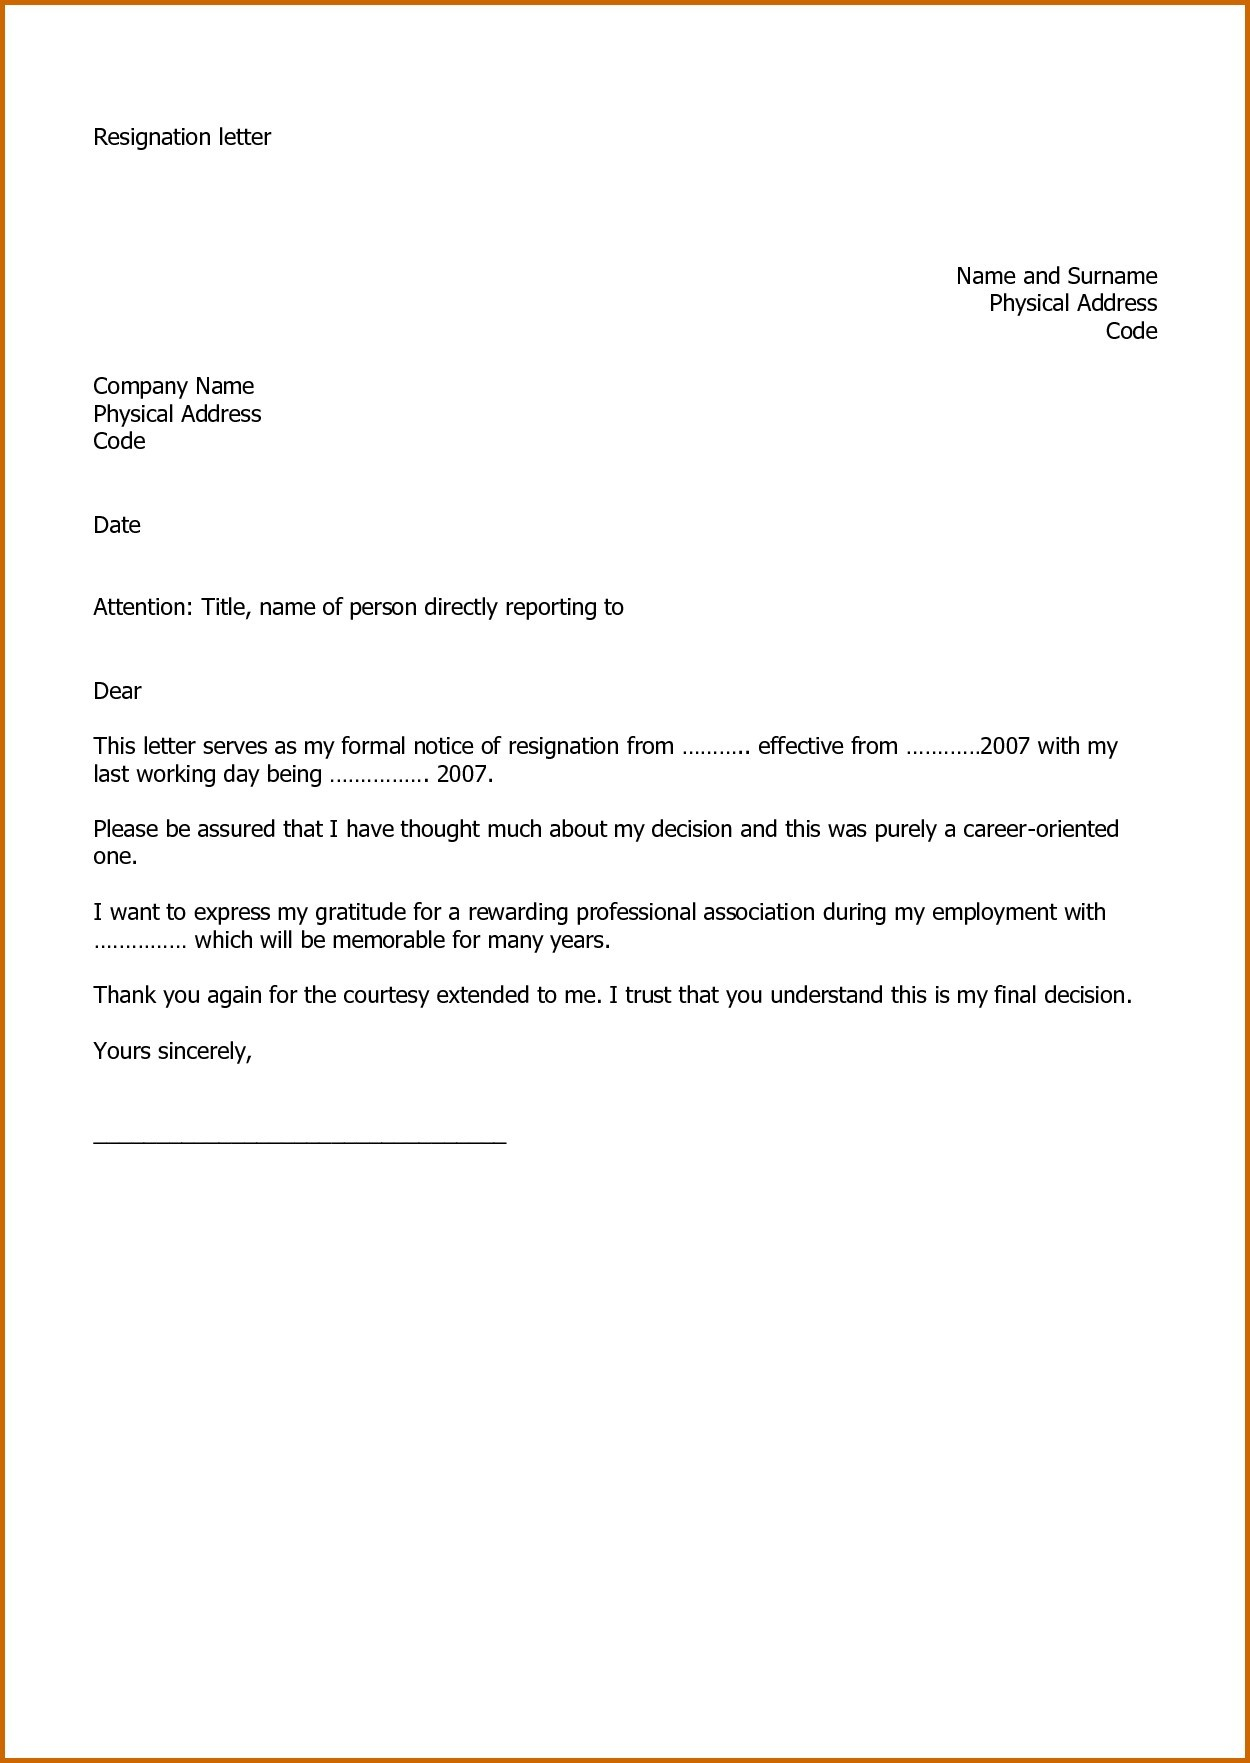 Letter Of Resignation Letter Template - Thank You Letter after Finishing A Job Save Resignation Letter for